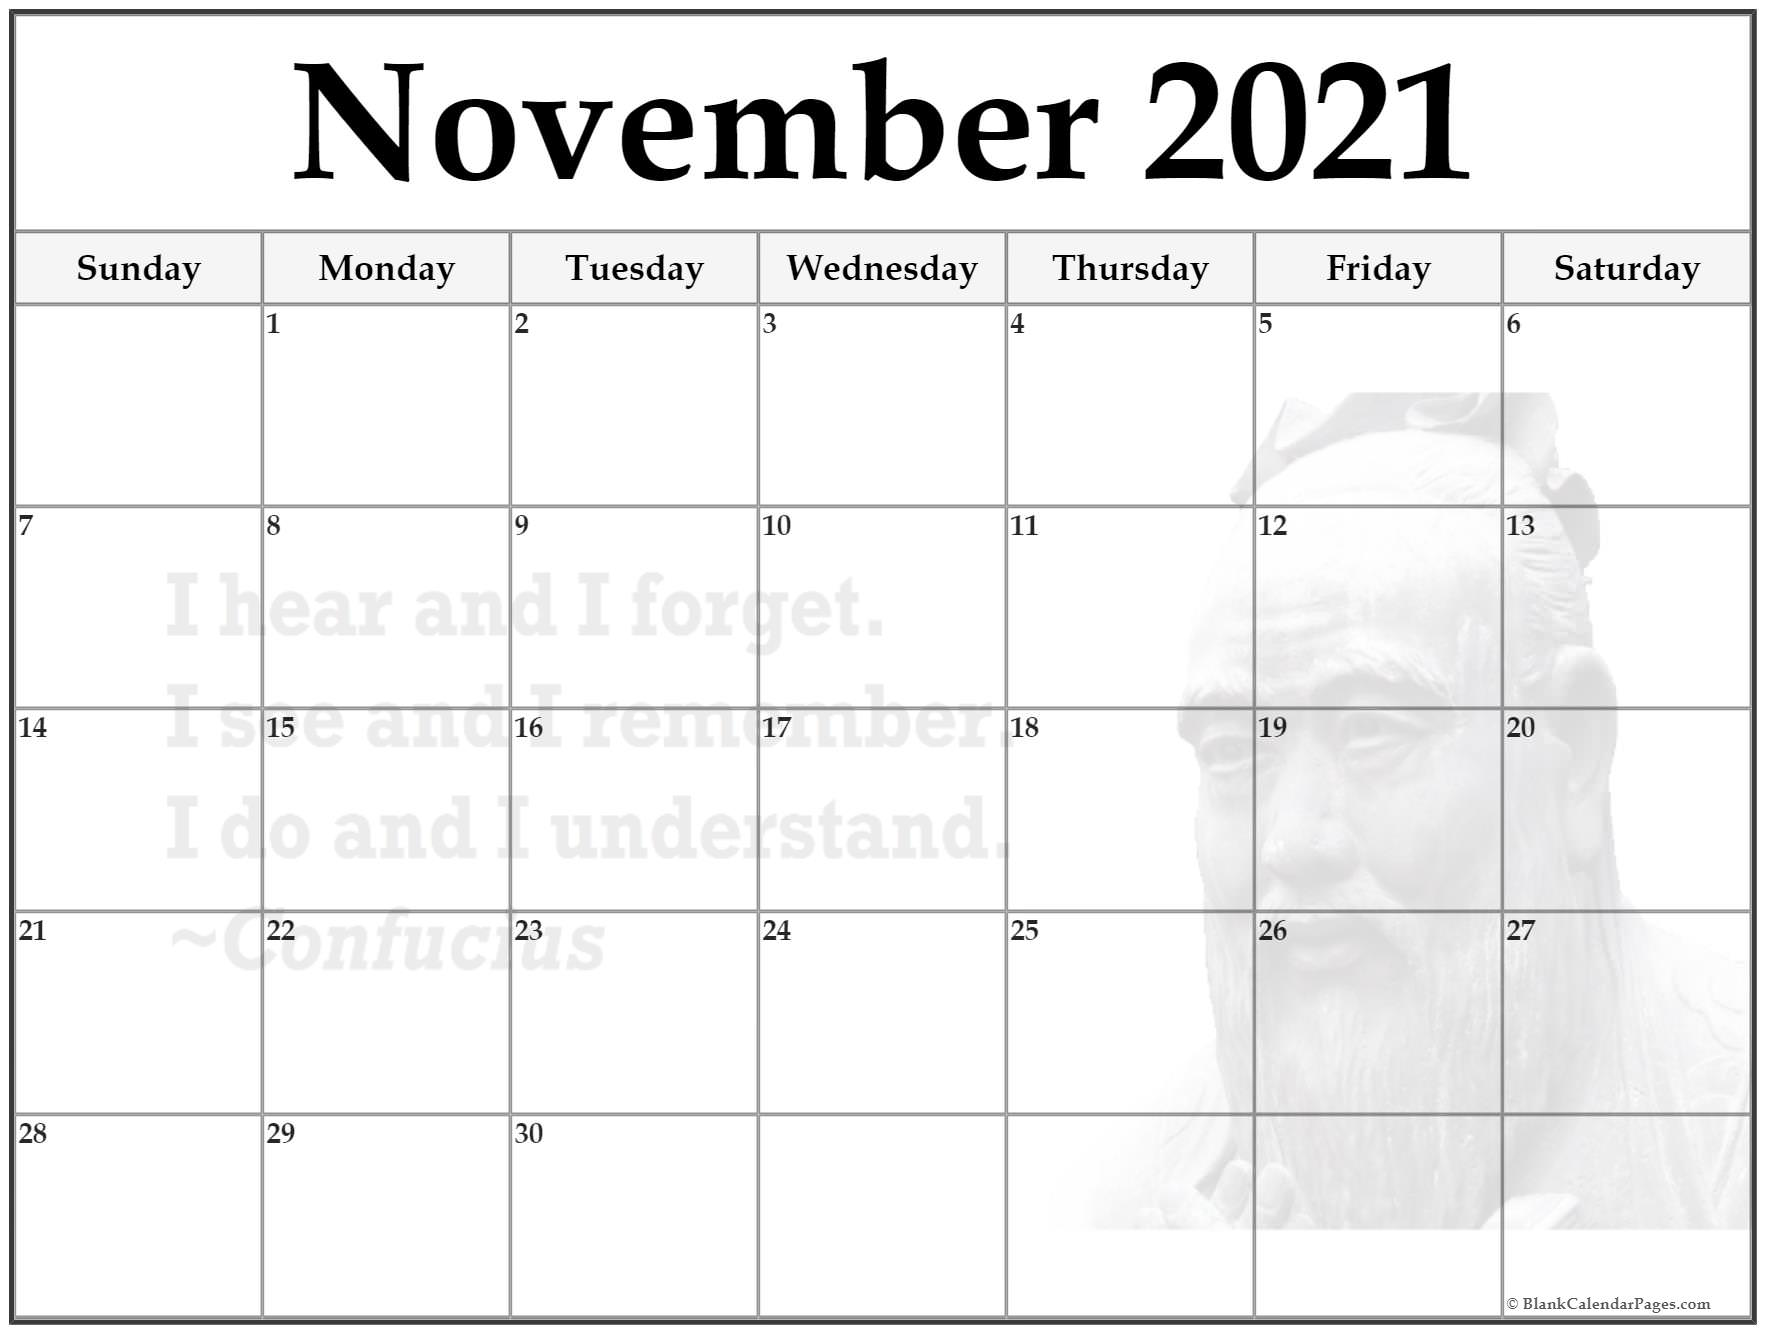 November 2020 monthly calendar template. I hear and I forget.I see and I remember.I do and I understand.~Confucius